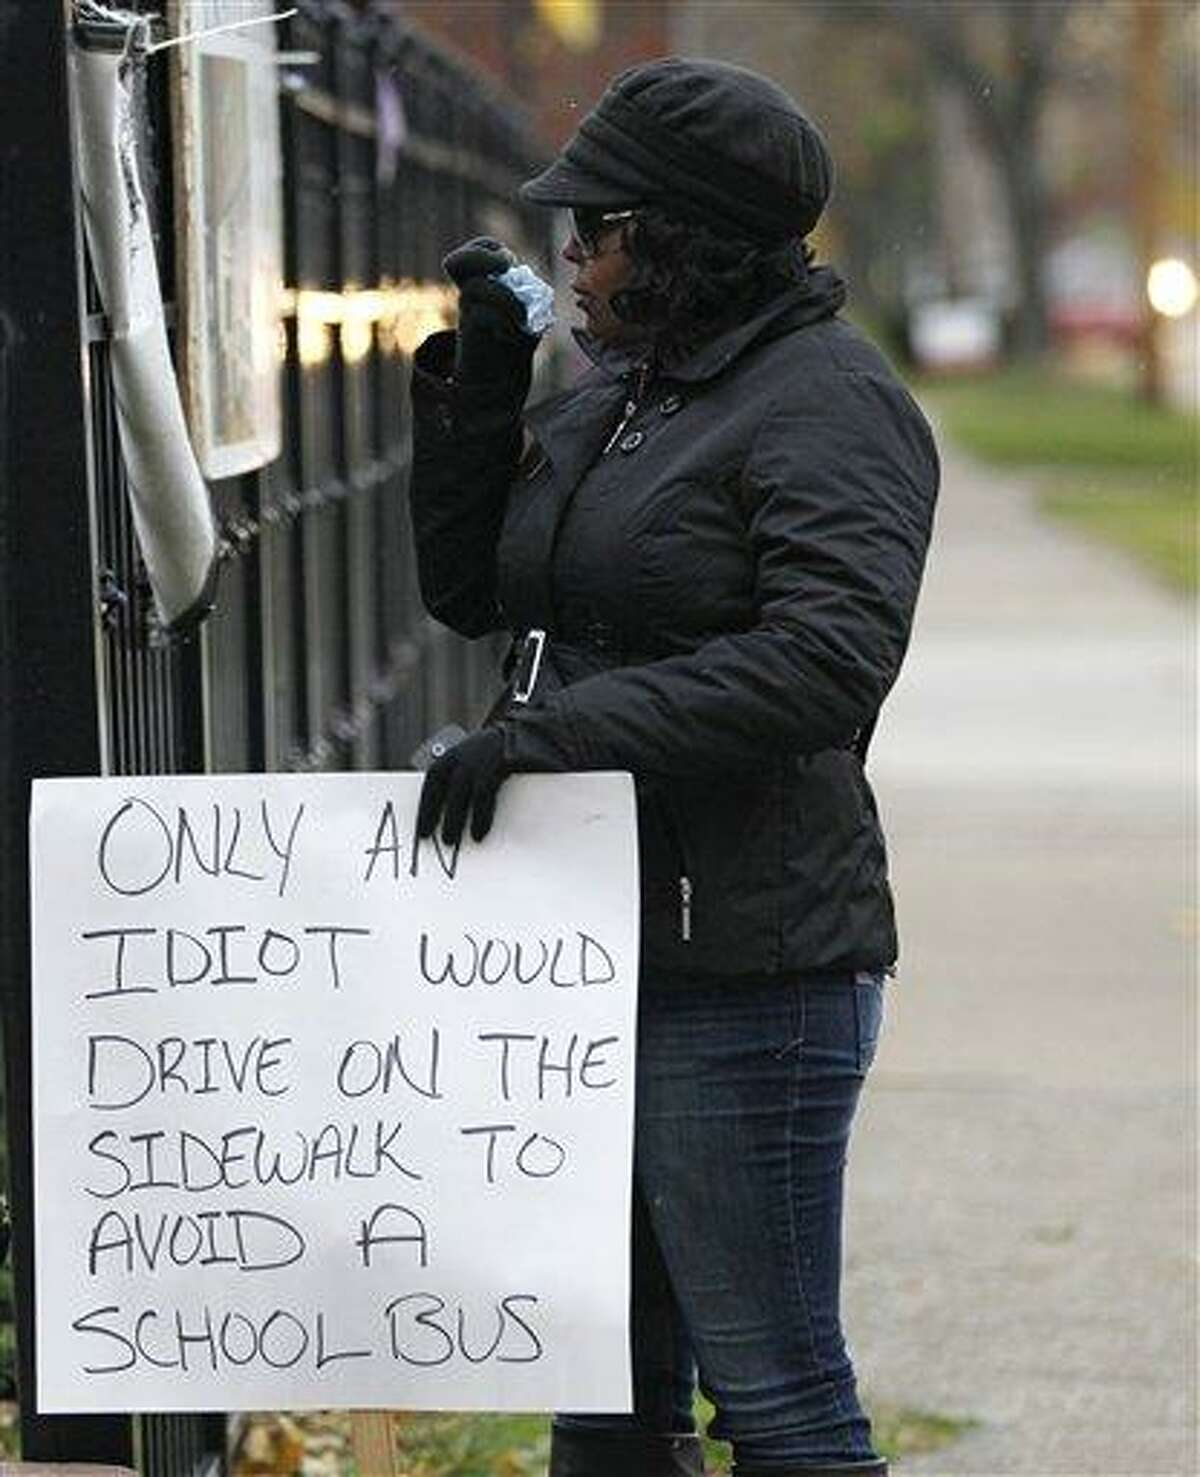 Shena Hardin wipes her nose as she holds up a sign to serve a highly public sentence Tuesday, Nov. 13, 2012, in Cleveland, for driving on a sidewalk to avoid a Cleveland school bus that was unloading children. A Cleveland Municipal Court judge ordered 32-year-old Hardin to serve the highly public sentence for one hour Tuesday and Wednesday. (AP Photo/Tony Dejak)